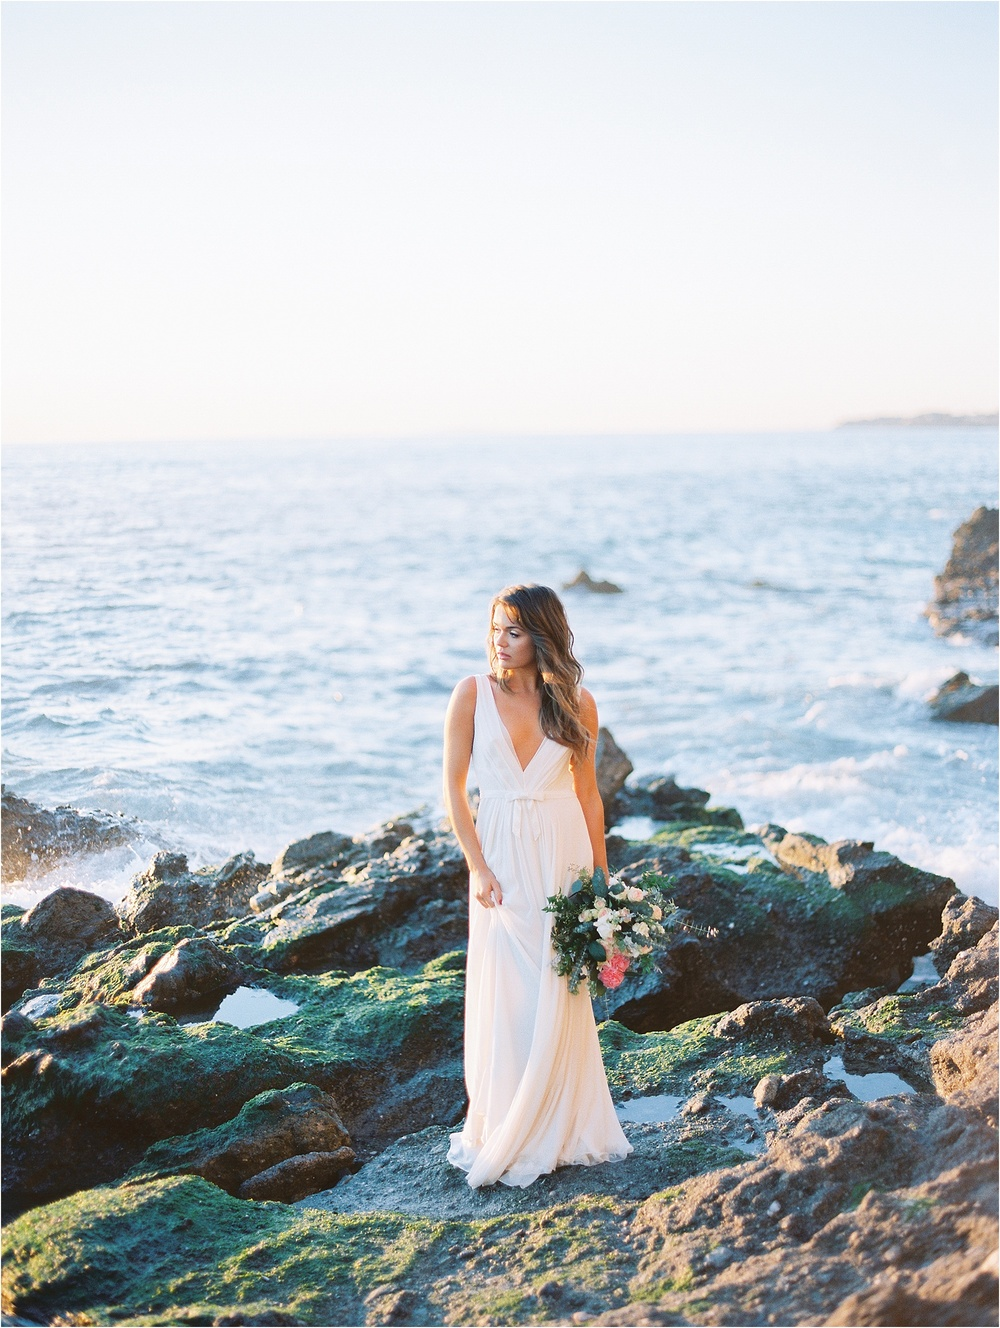 victoria-beach-wedding-inspiration-24.jpg